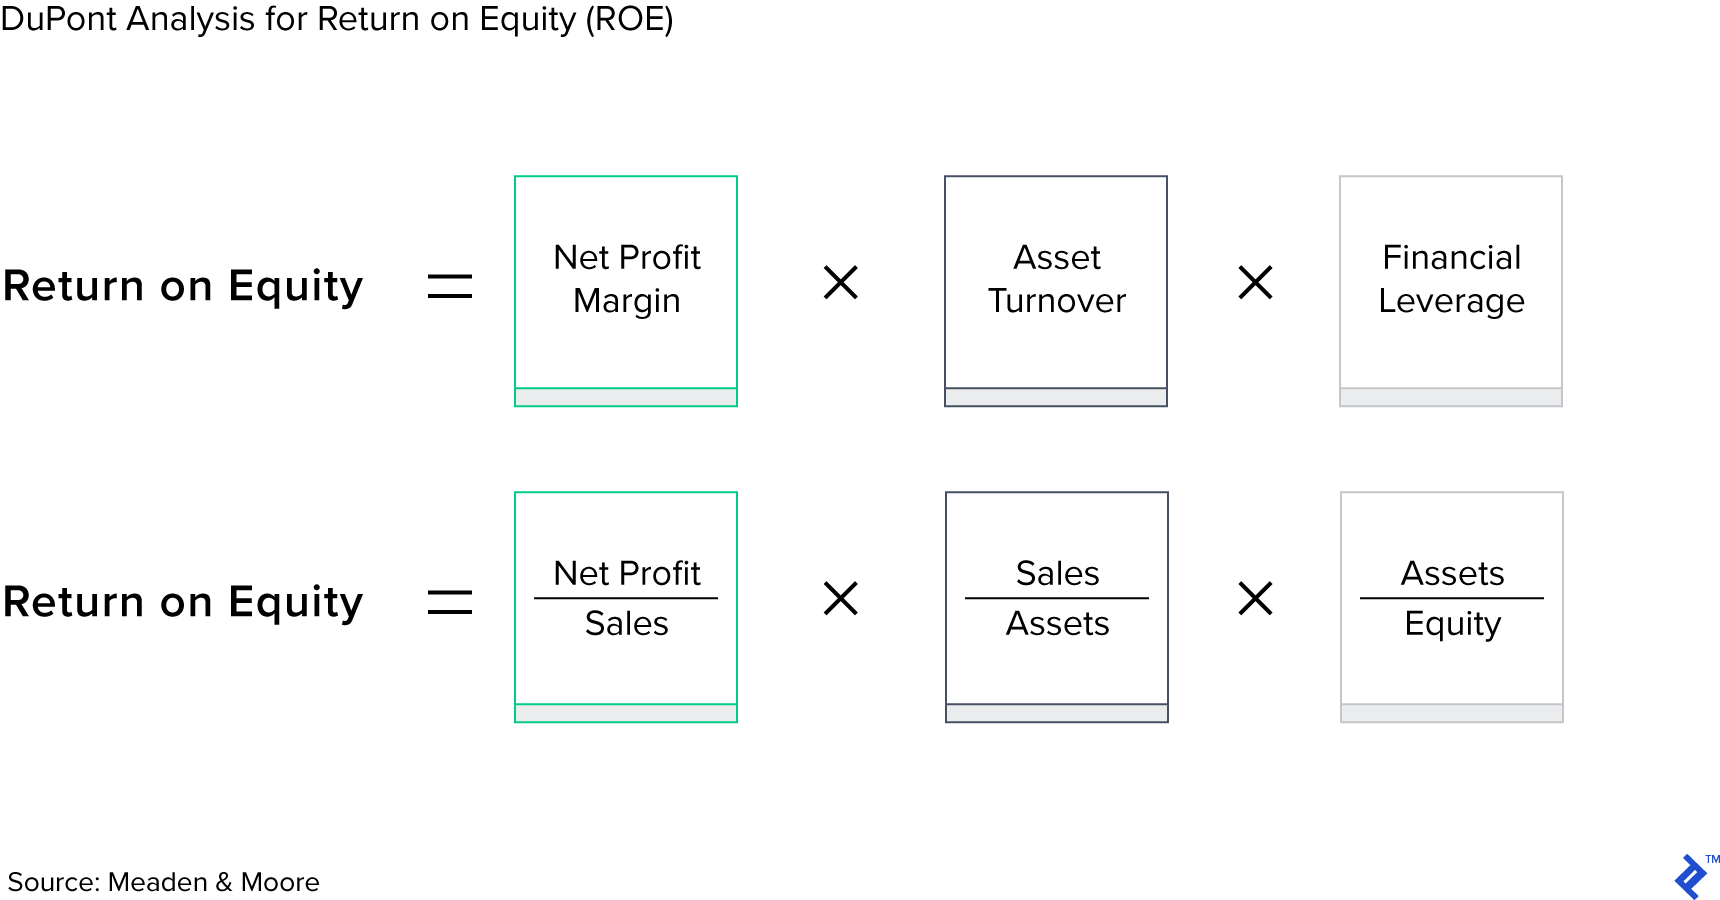 DuPont analysis for Return on Equity, or ROE